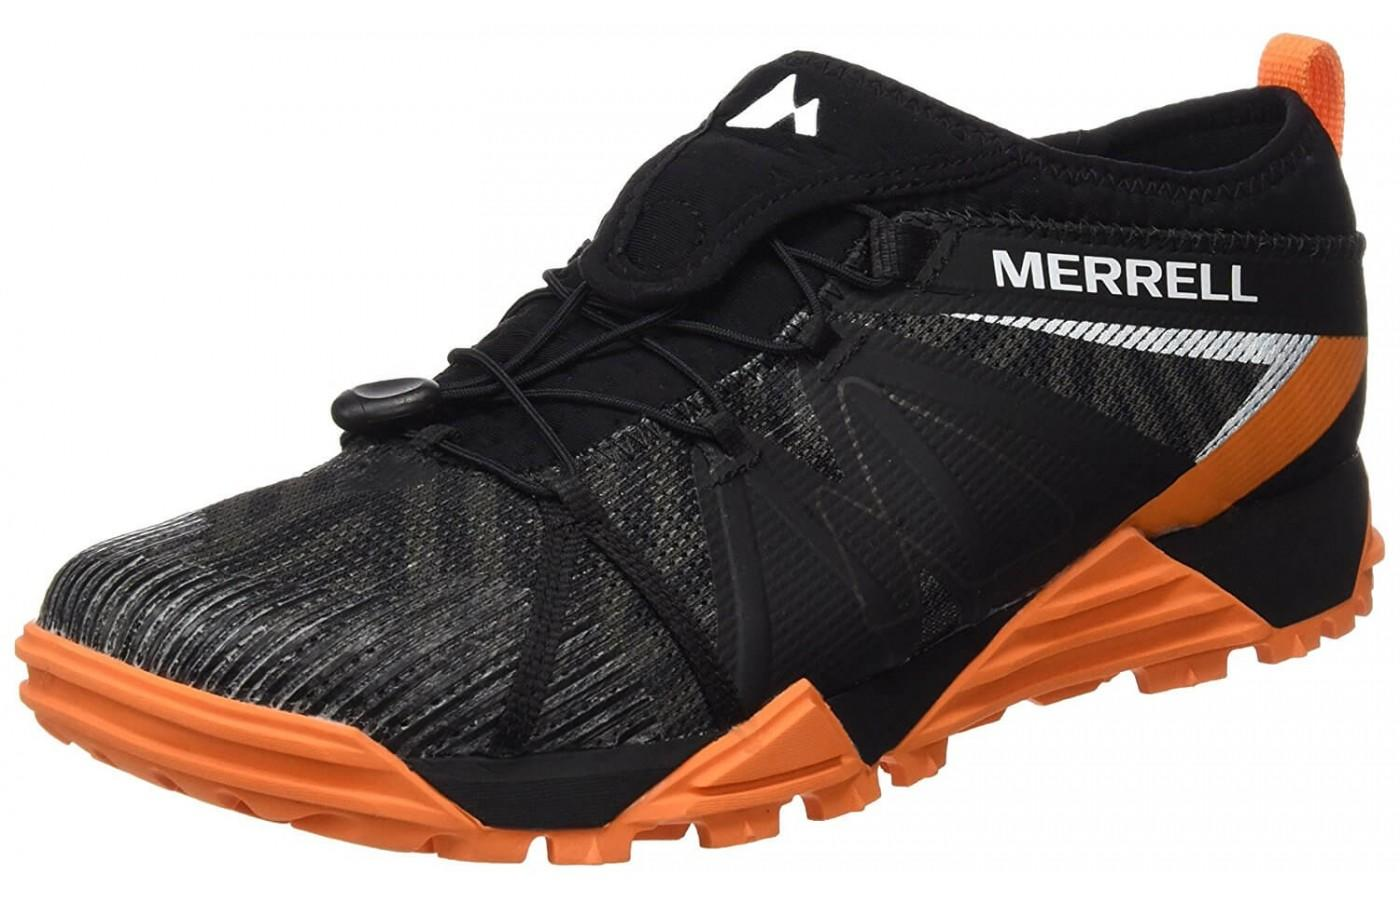 The Merrell Avalaunch Tough Mudder shown from the front/side